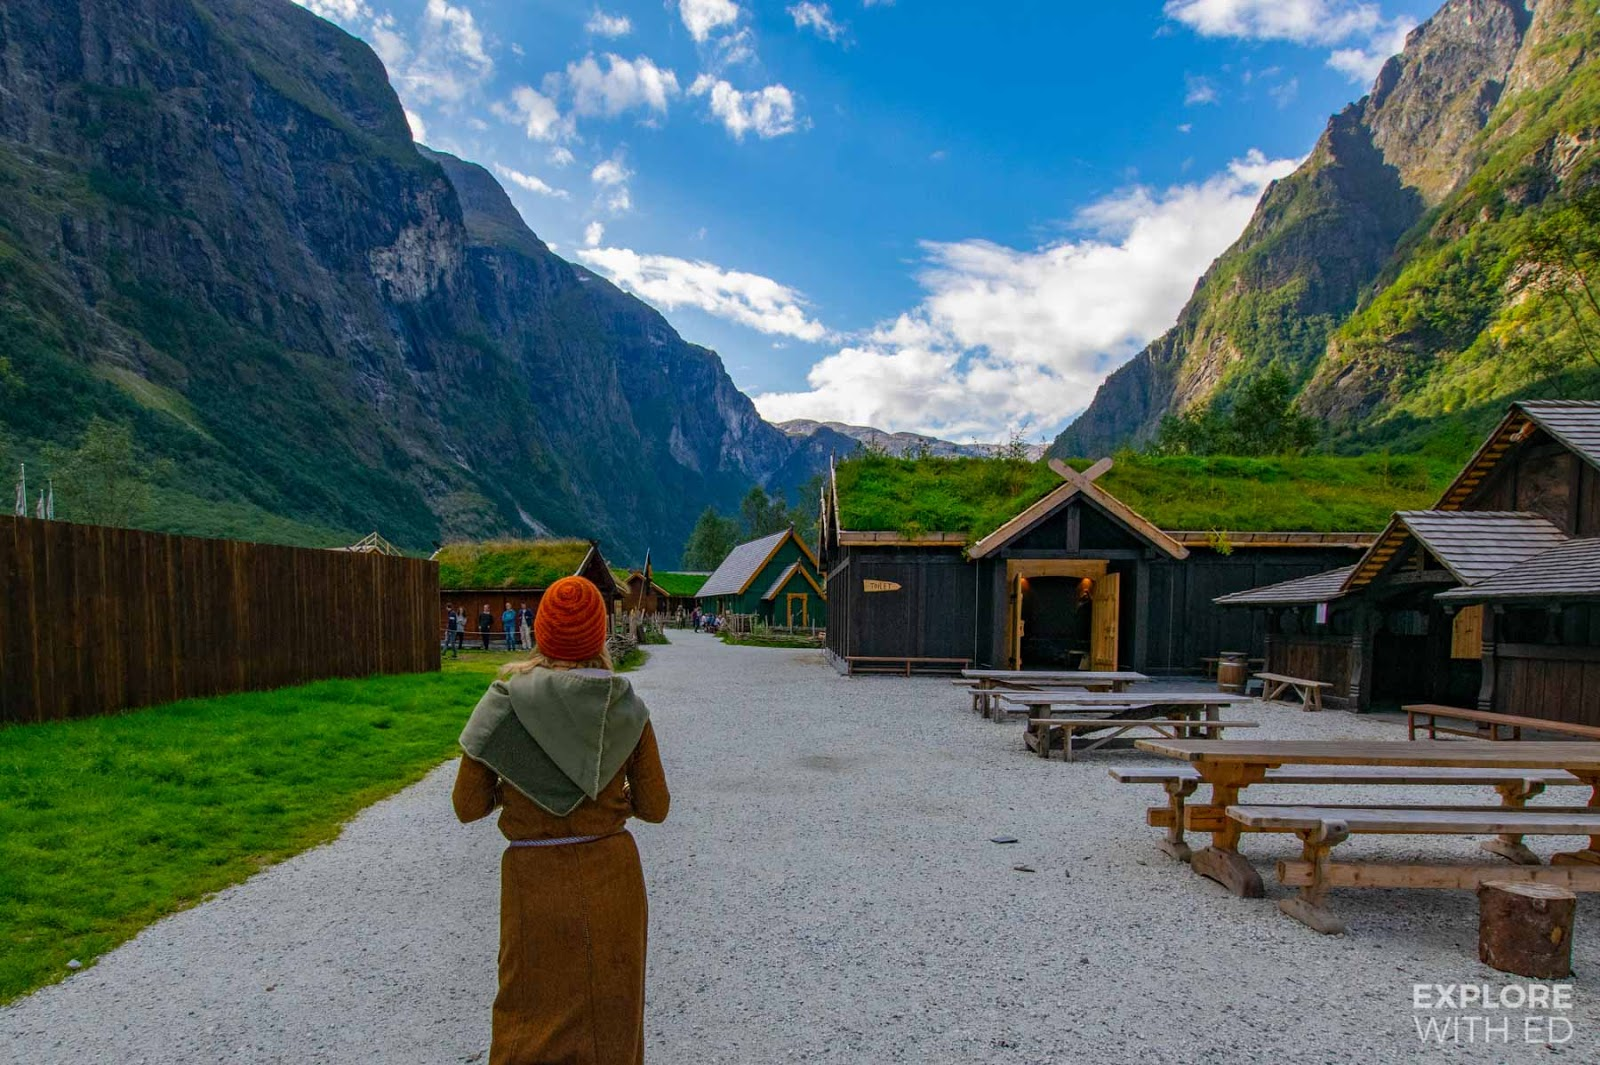 Guided tour of the Njardarheimr Viking Valley